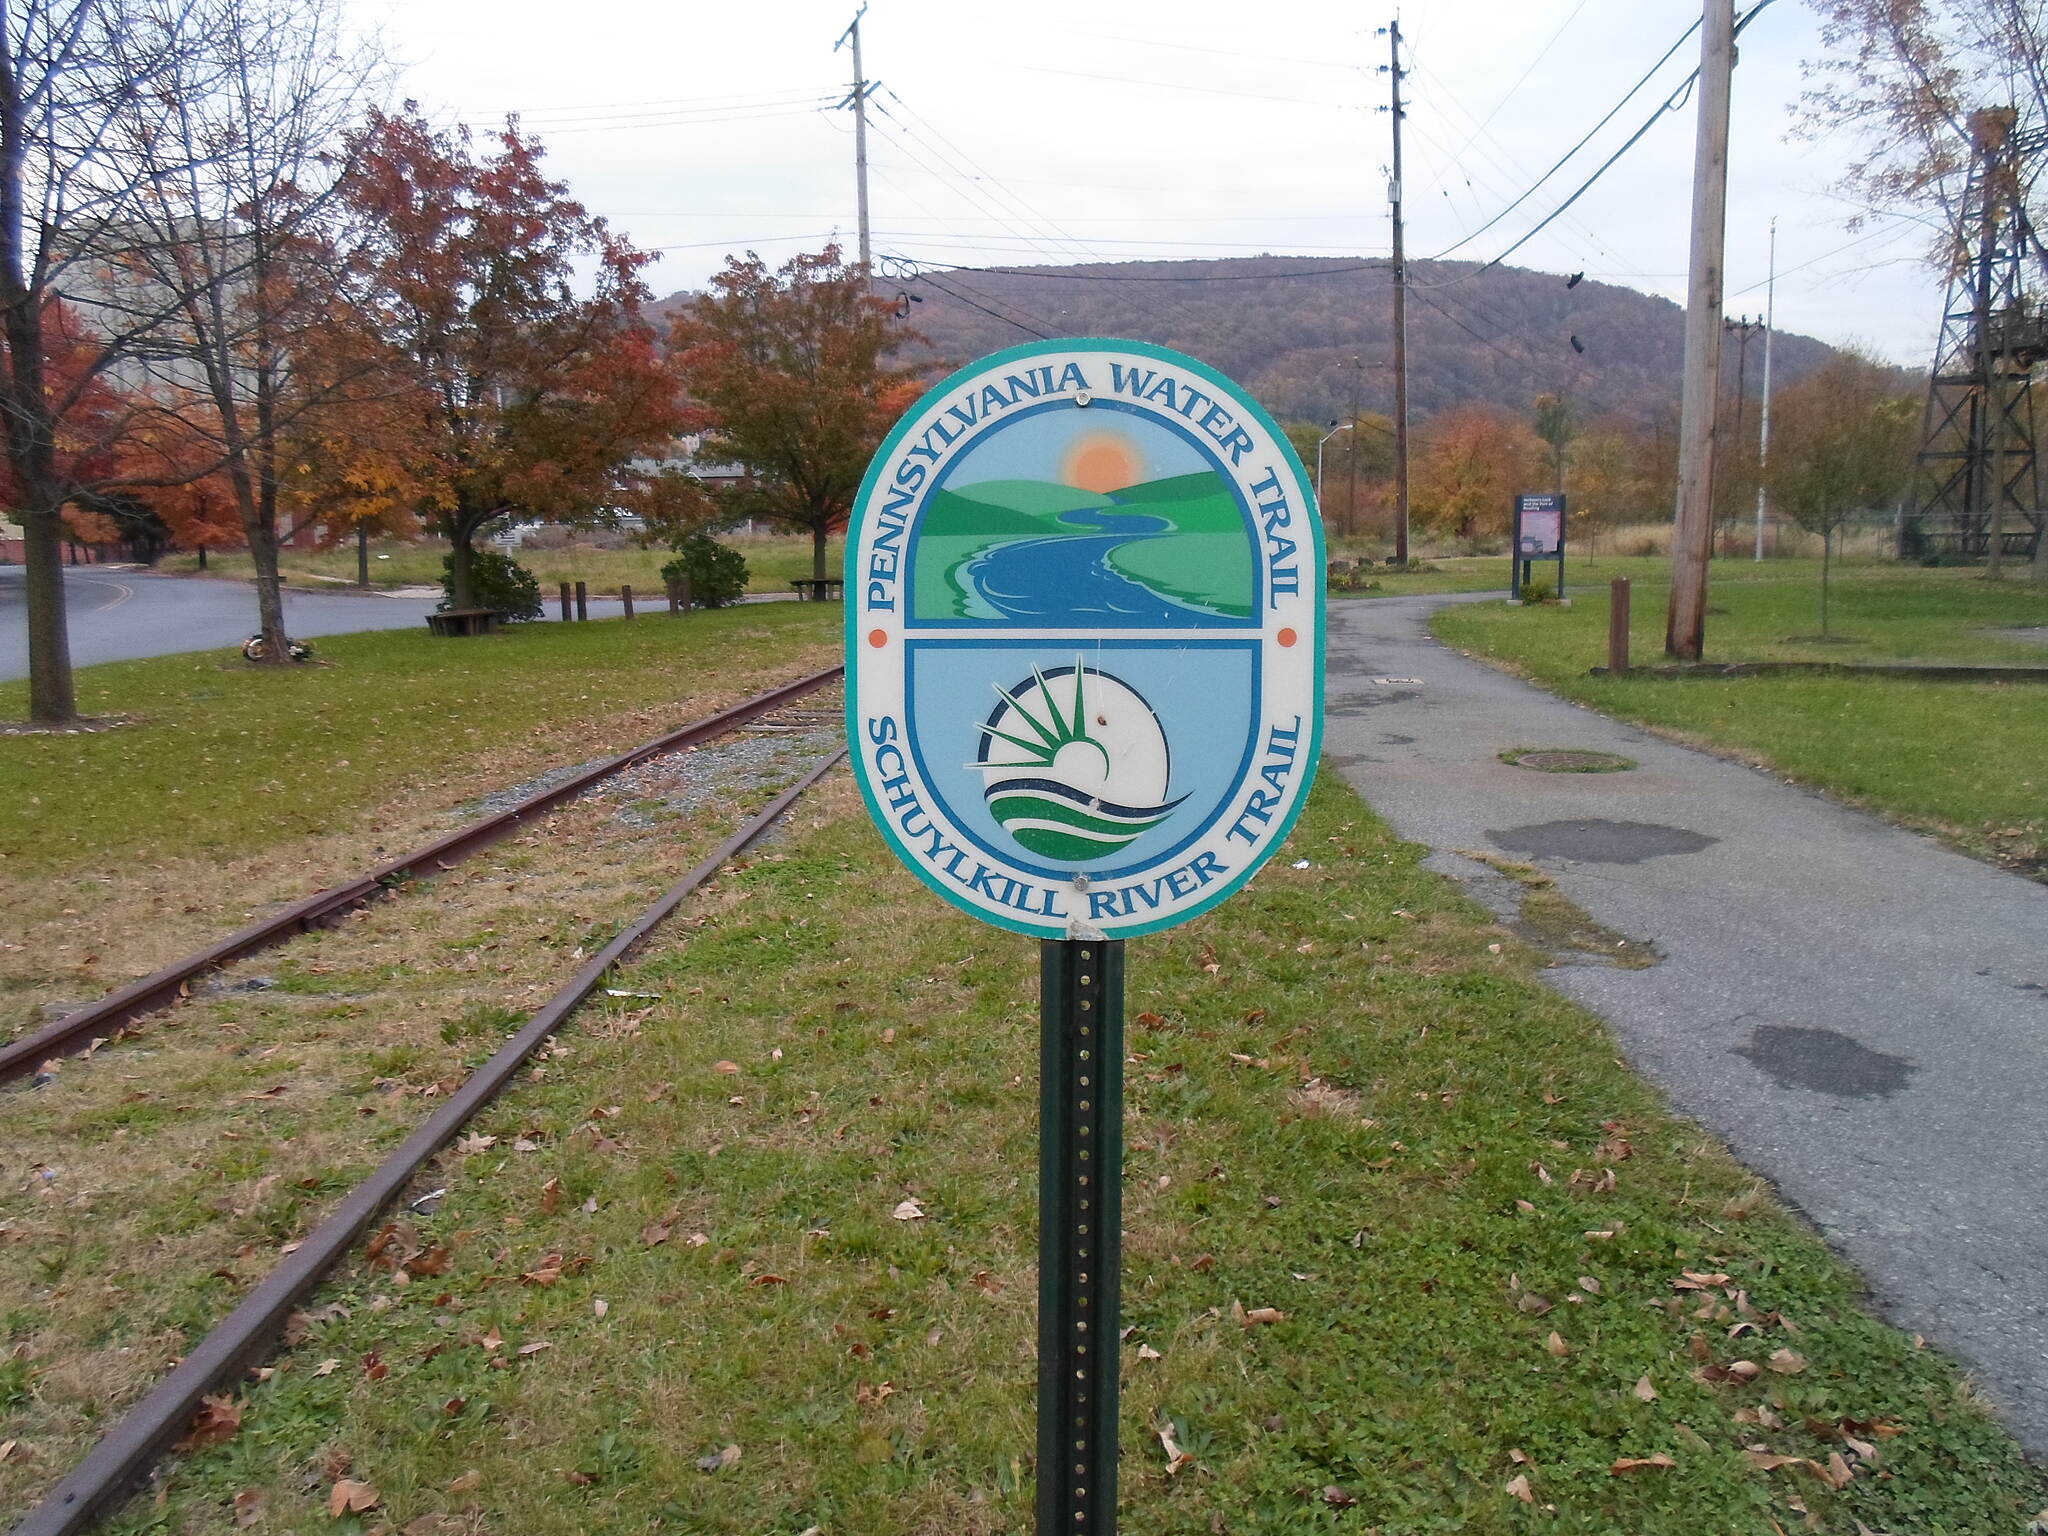 Neversink Connector Trail Neversink Connector Trail Sign near the trail's southern terminus at Reading's Heritage Park indicating its significance in the extensive greenway network that it is part of.